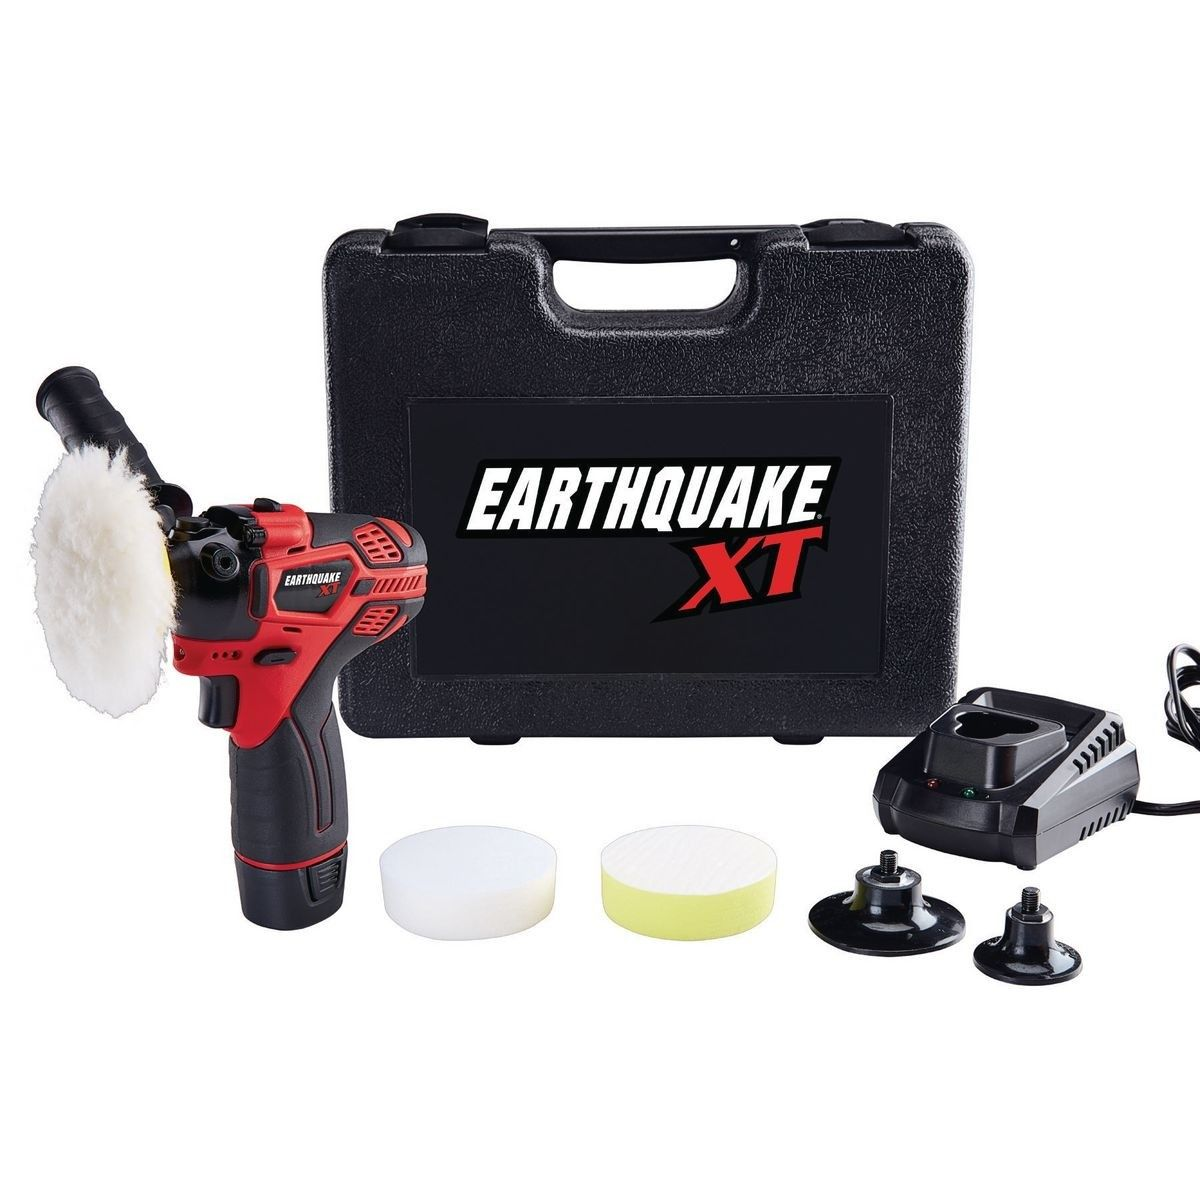 12v Max Lithium Cordless Compact Polisher Sander Kit Compact Harbor Freight Tools Cordless